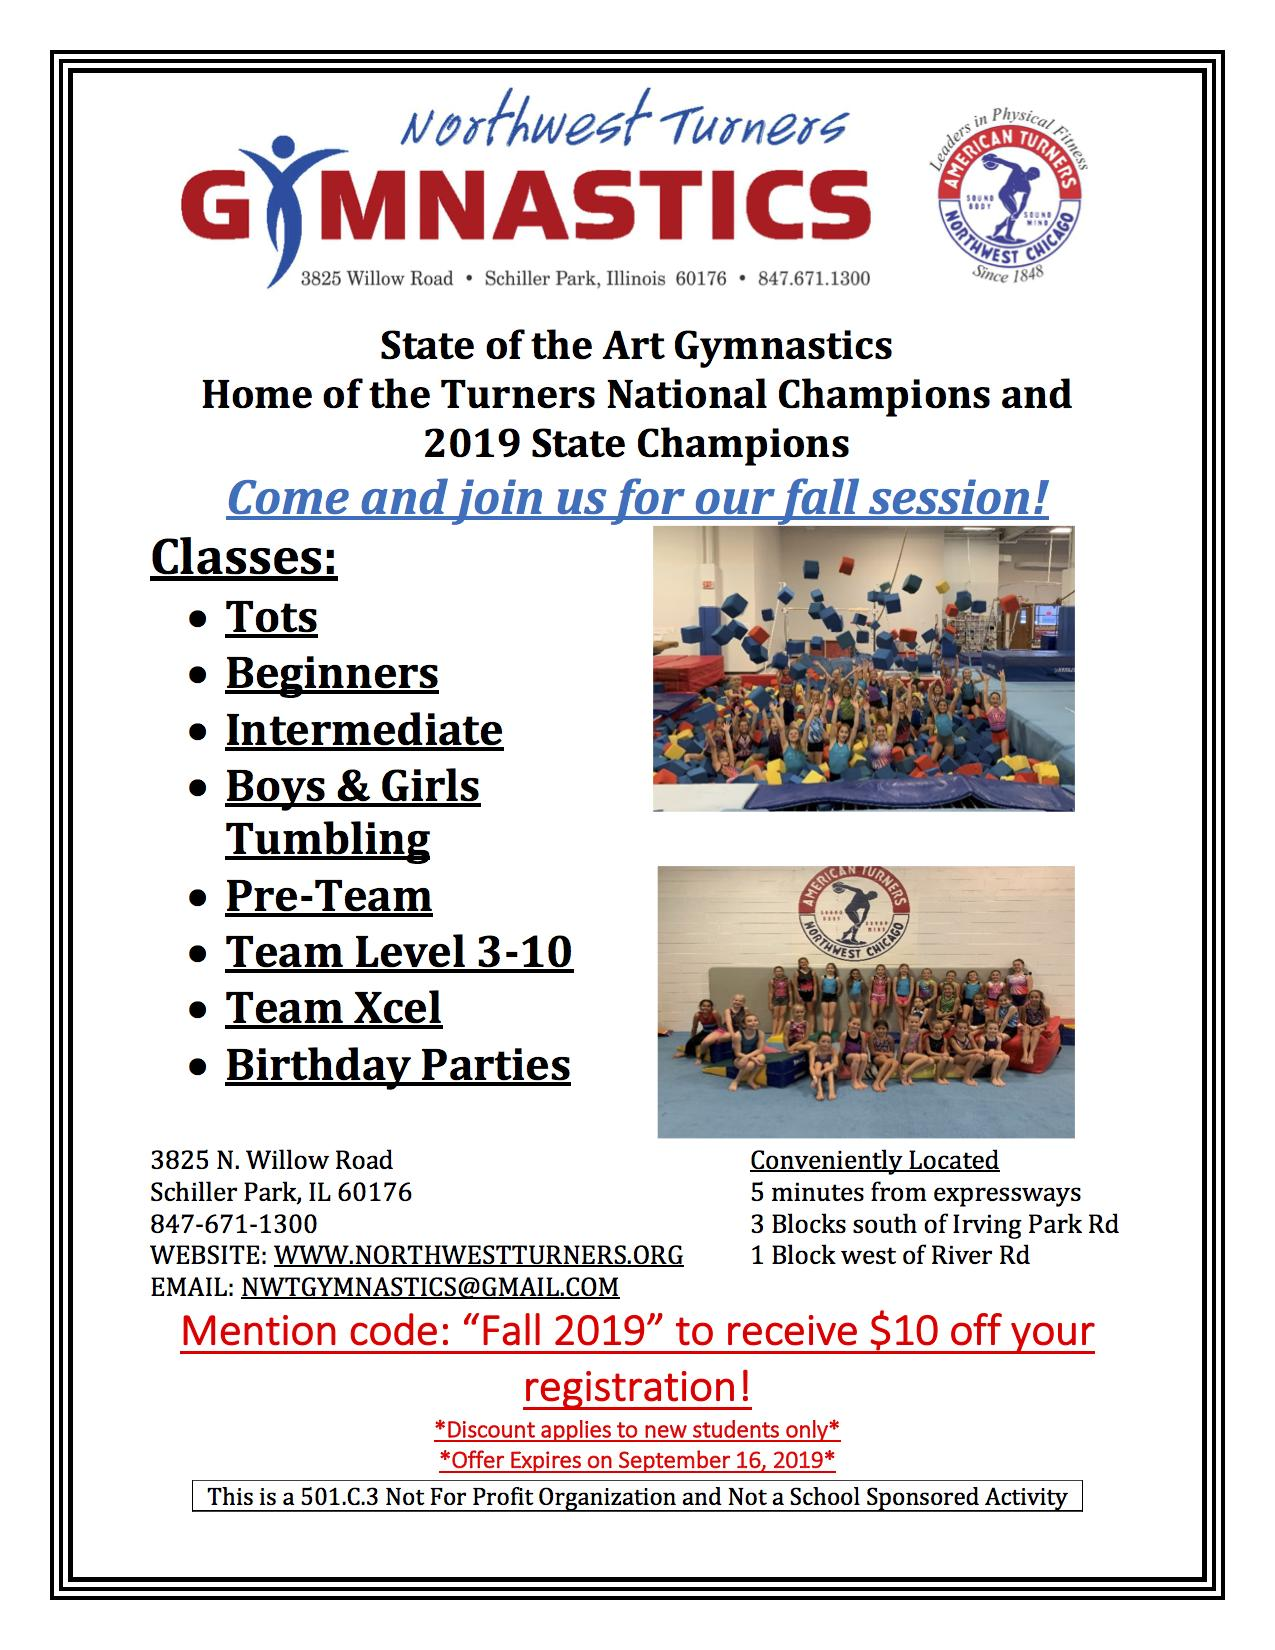 Northwest Turners Gymnastics